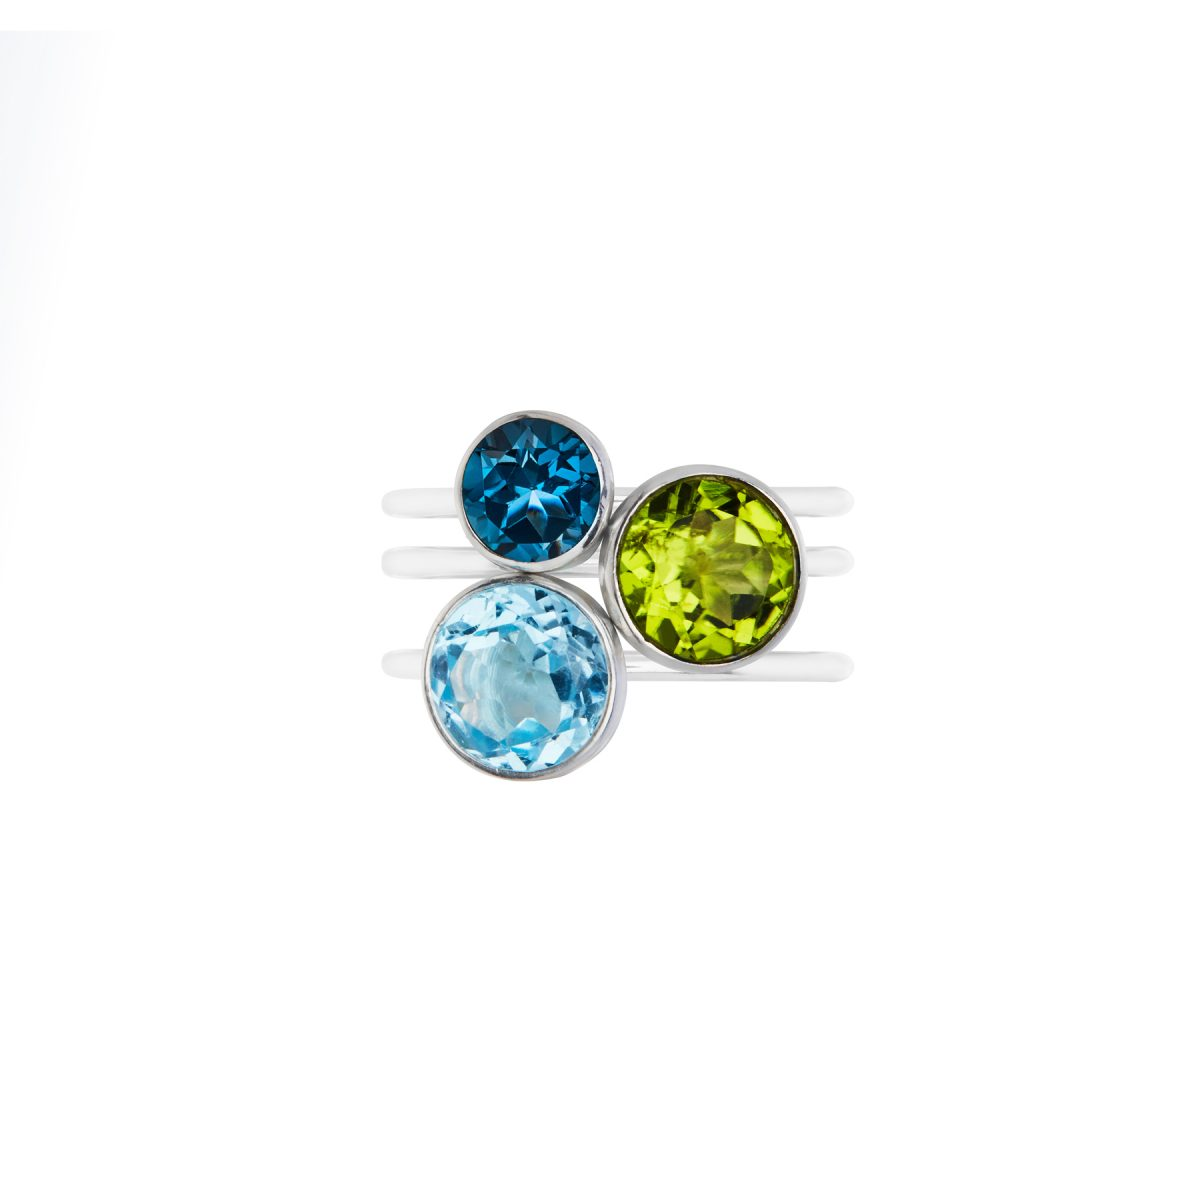 Small London Blue Topaz stacking ring in silver. Large Peridot and silver stacking ring, large Sky Blue Topaz and silver stacking ring.